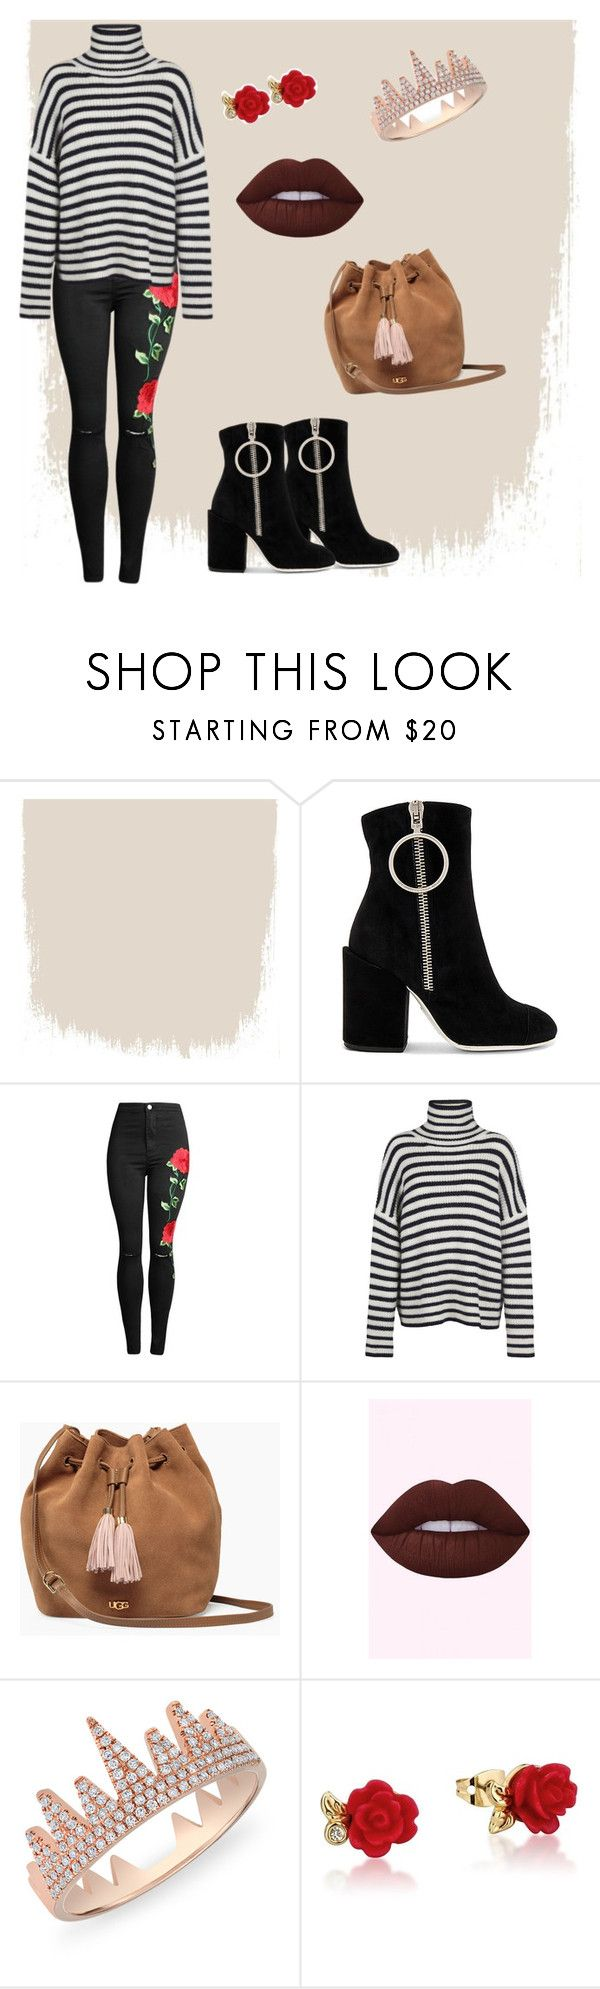 """outfit#88"" by alifia-fae on Polyvore featuring Off-White, Samsøe & Samsøe, UGG, Anne Sisteron and Disney"